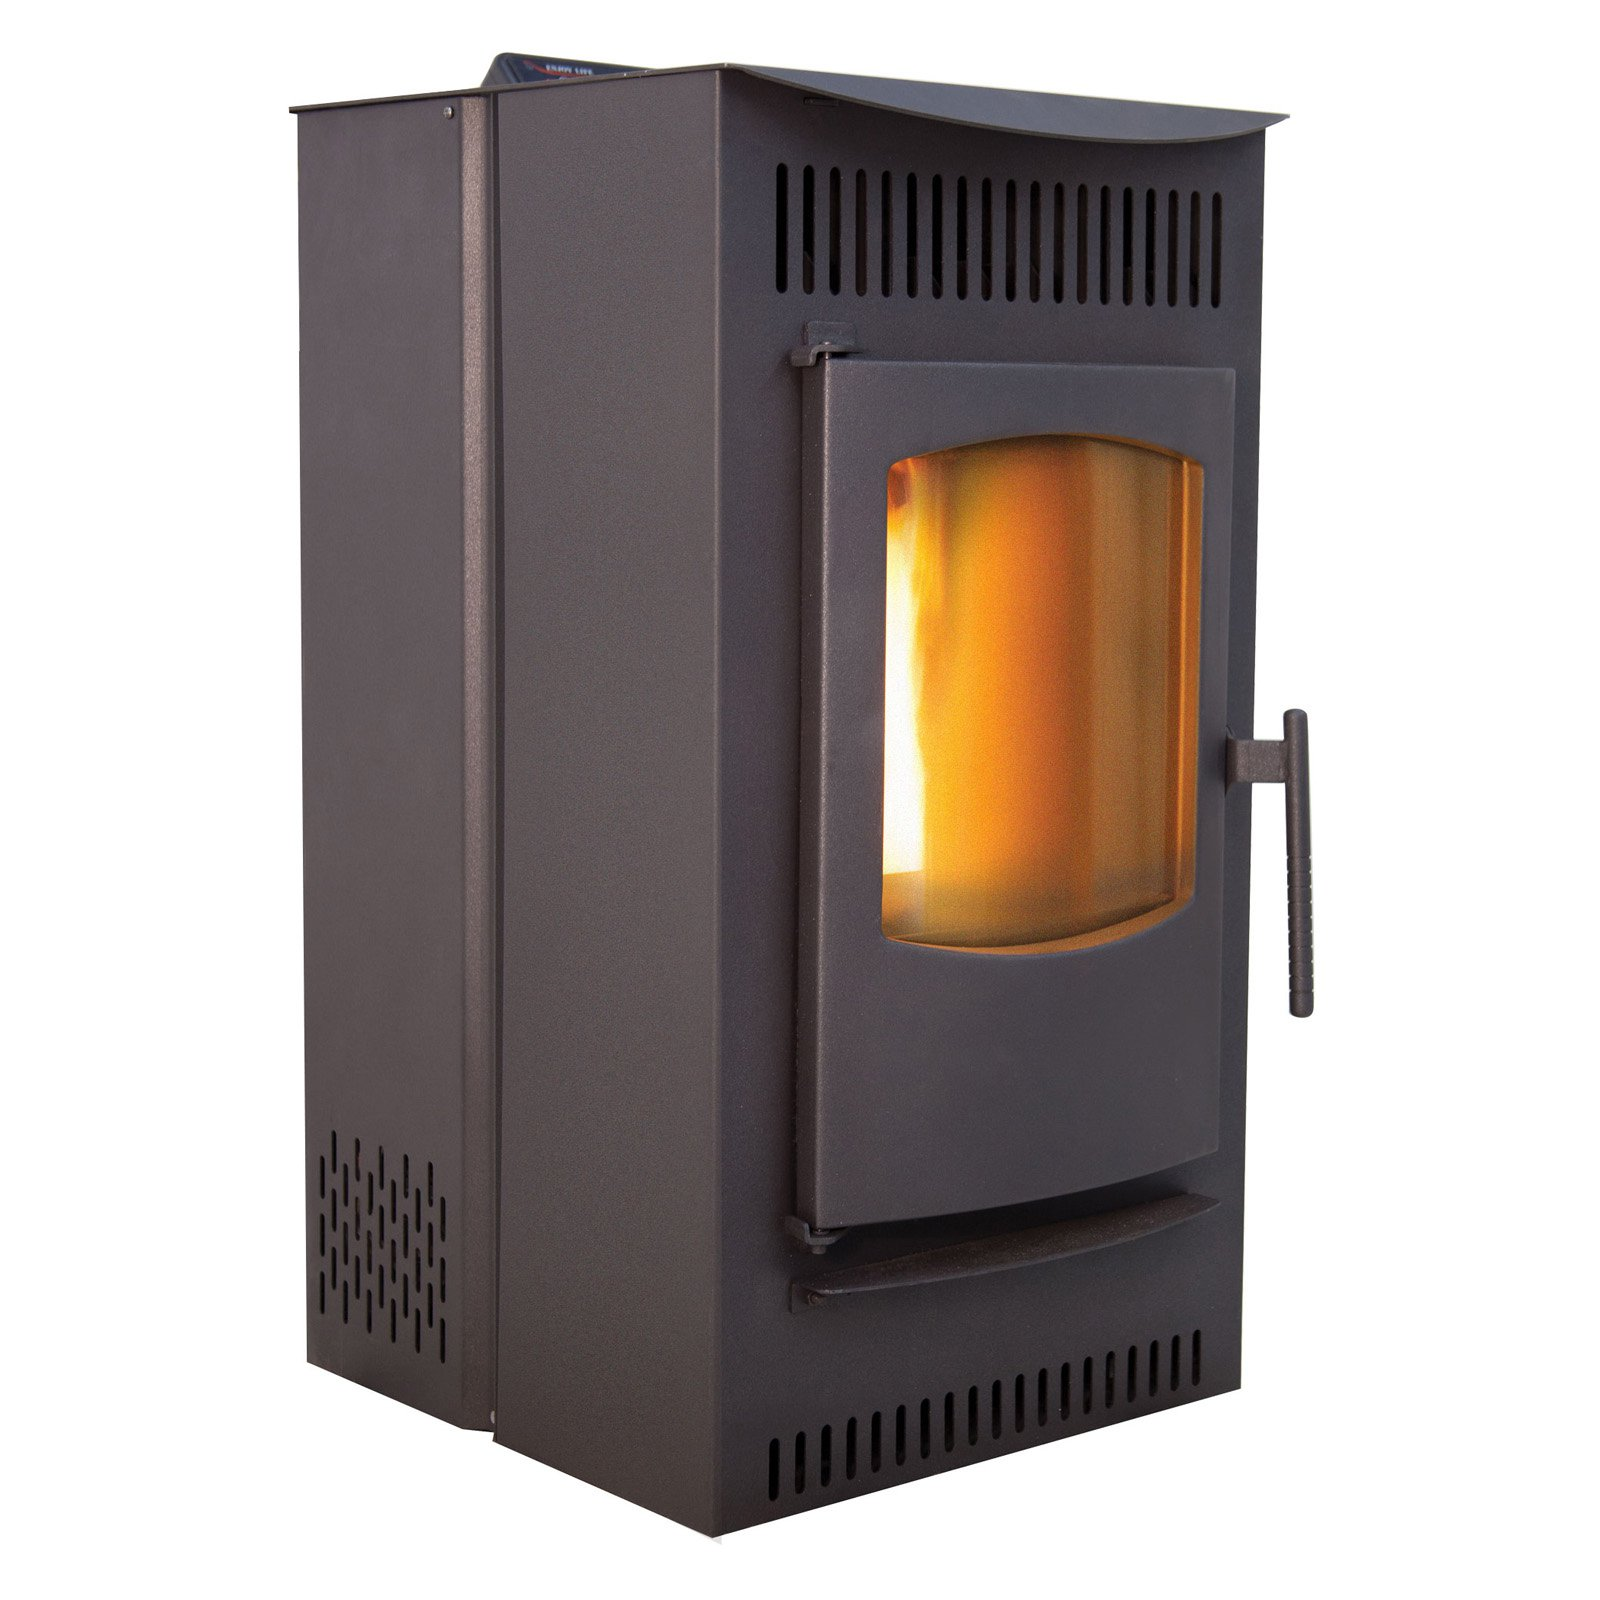 Castle Serenity Wood Pellet Stove with Smart Controller